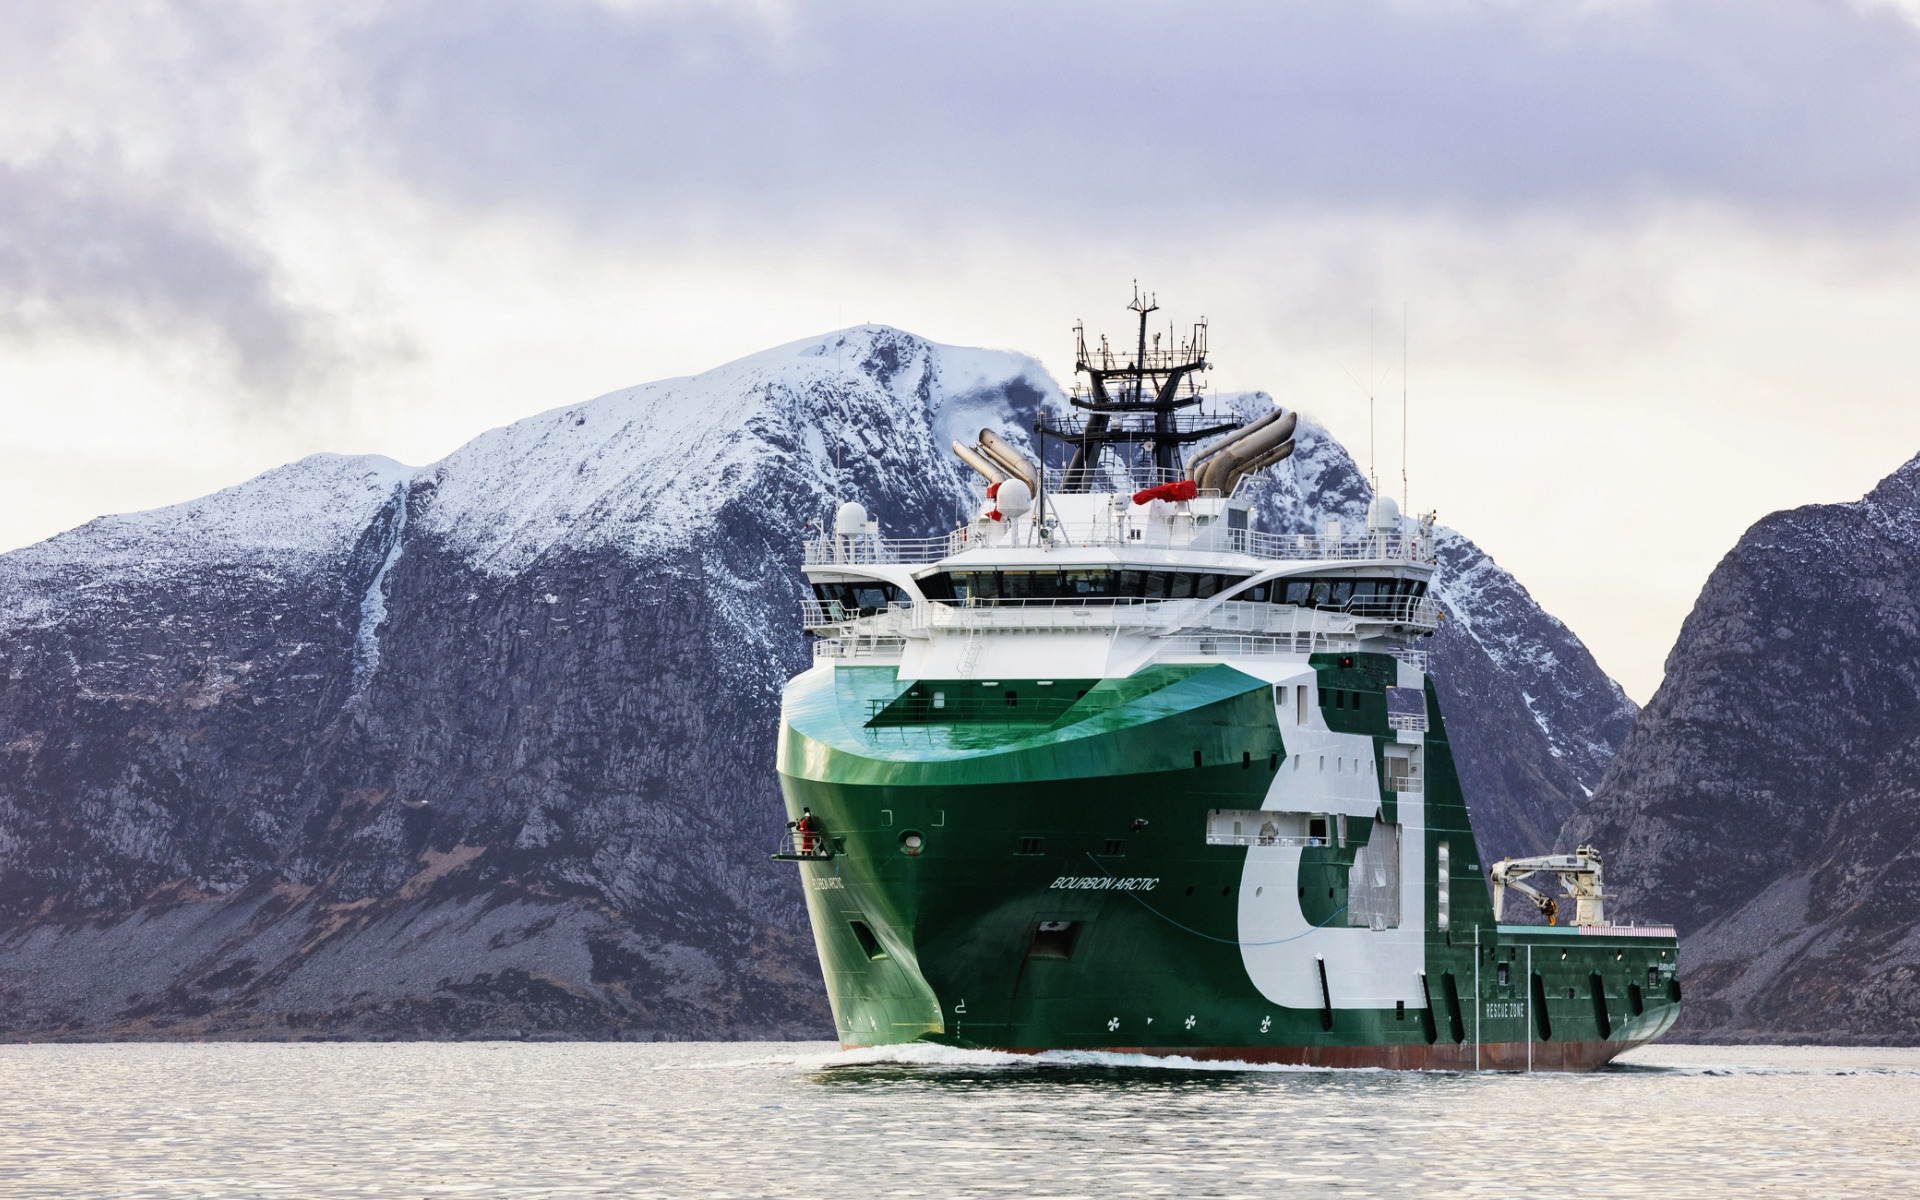 bourbon-arctic-port-ahts-vessel-offshore-supply-ship